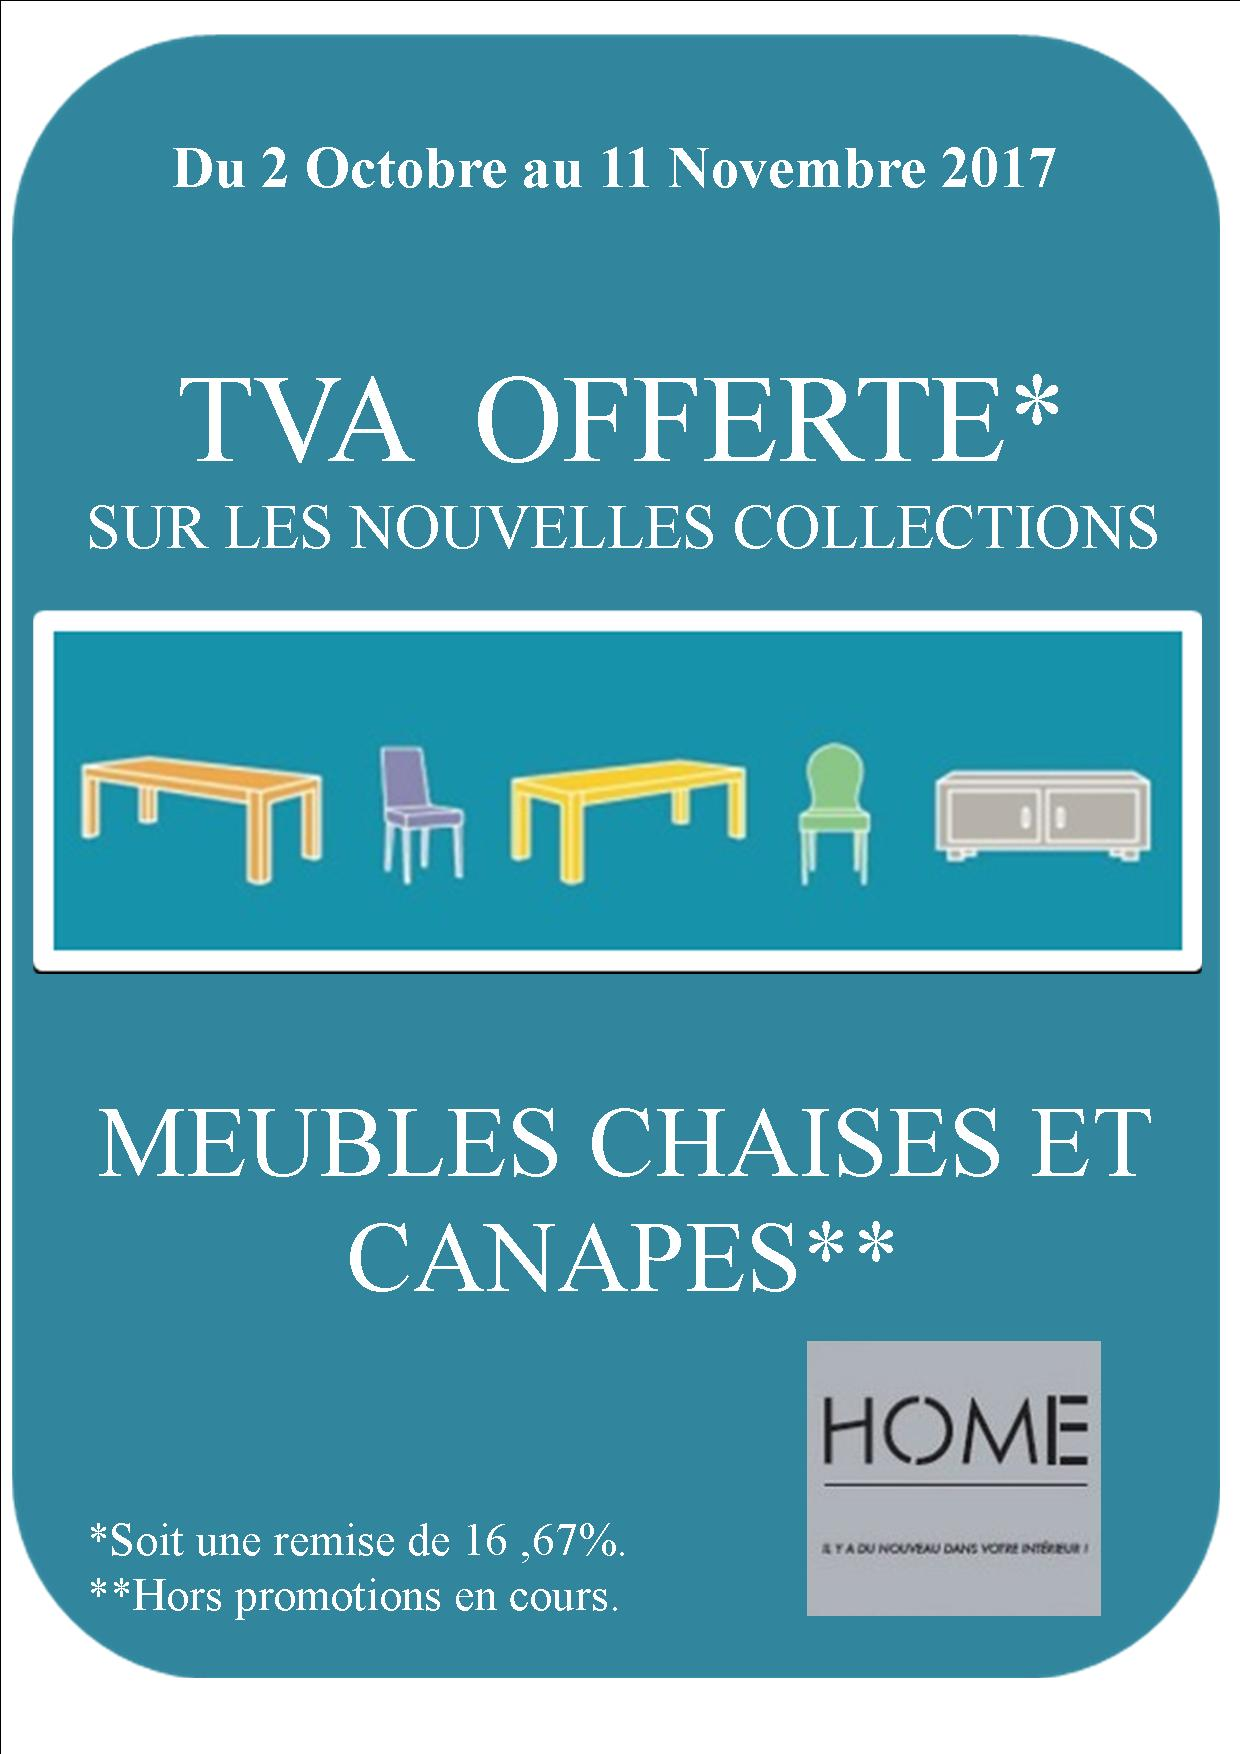 www.home-mobilier.fr/wp-content/uploads/2017/09/TV...